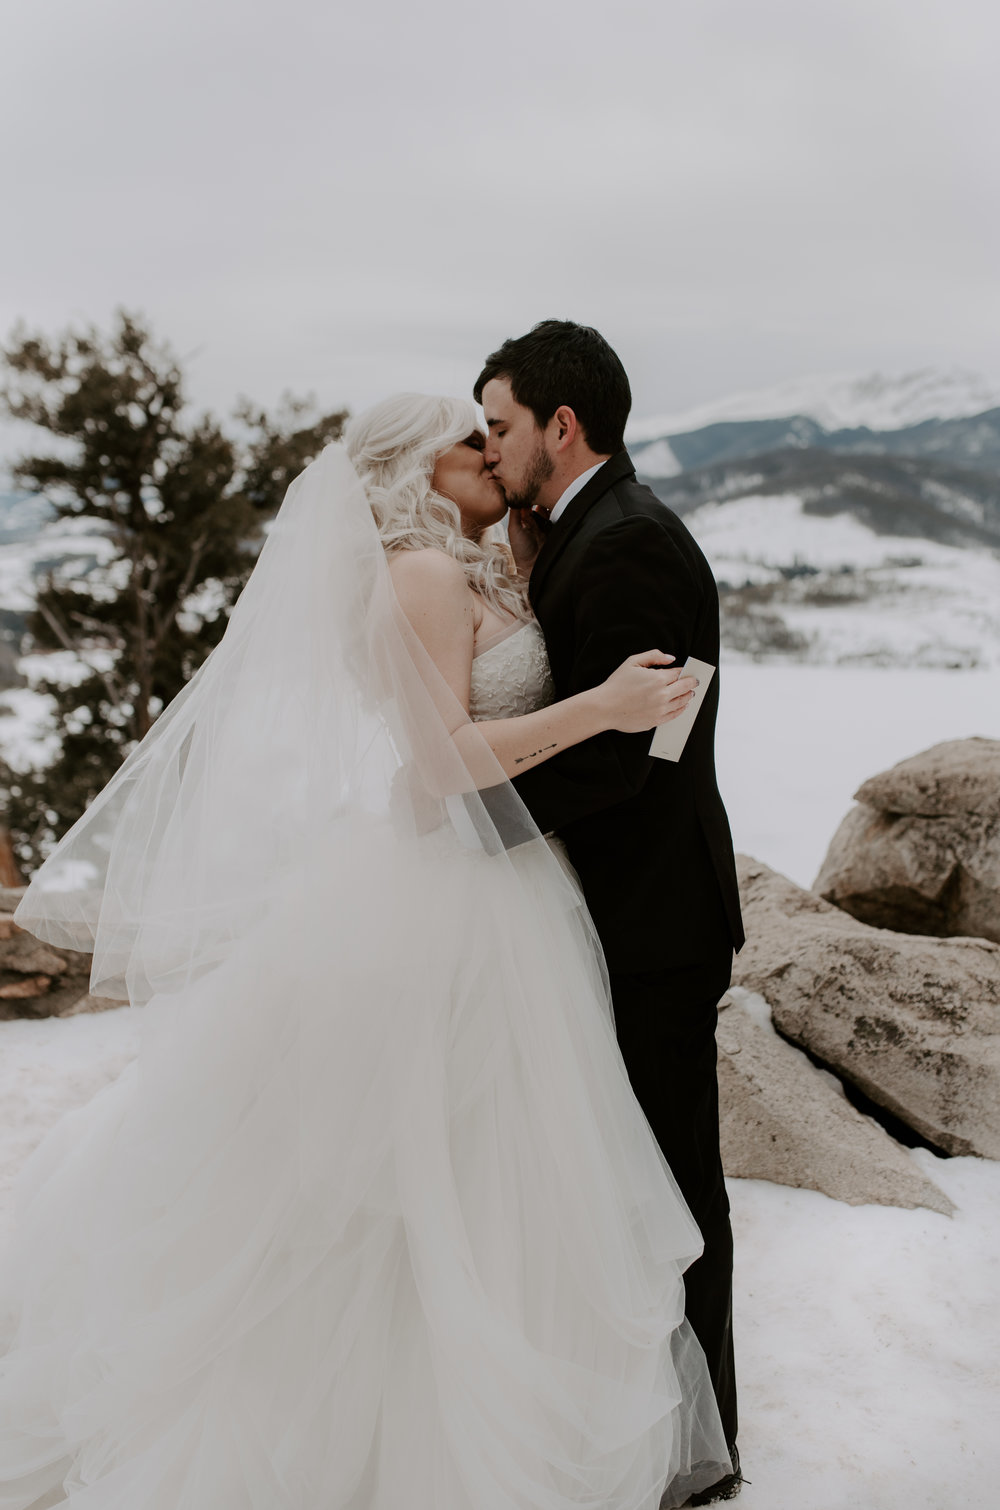 First kiss after the ceremony at this Sapphire Point elopement taken by a destination elopement and wedding photographer based in Colorado.